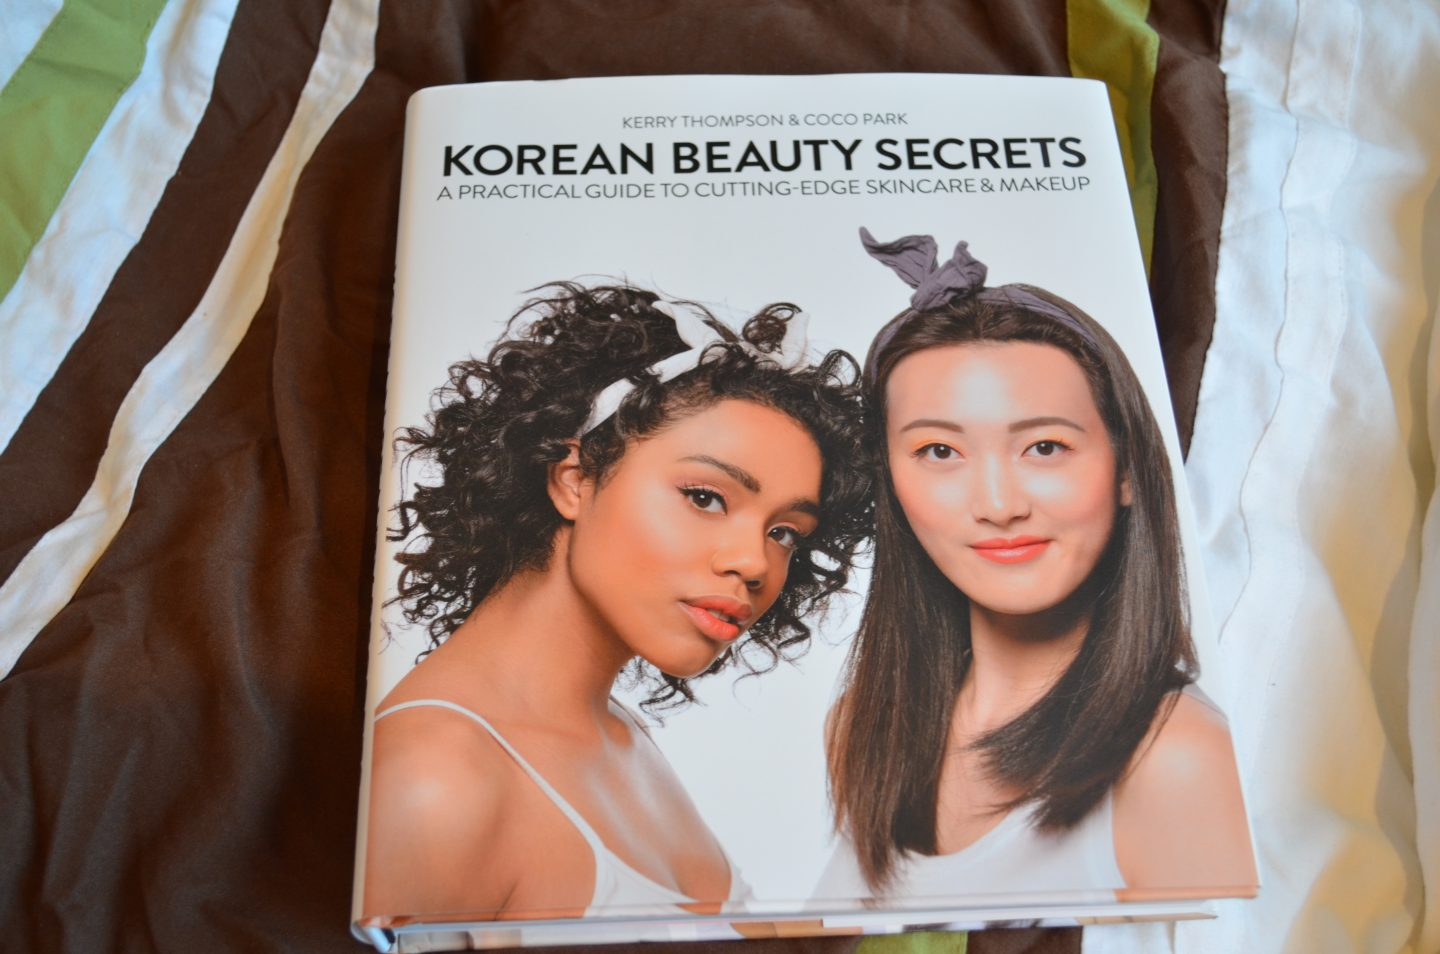 'Korean Beauty Secrets: A Practical Guide to Cutting-Edge Skincare & Makeup' Book Review